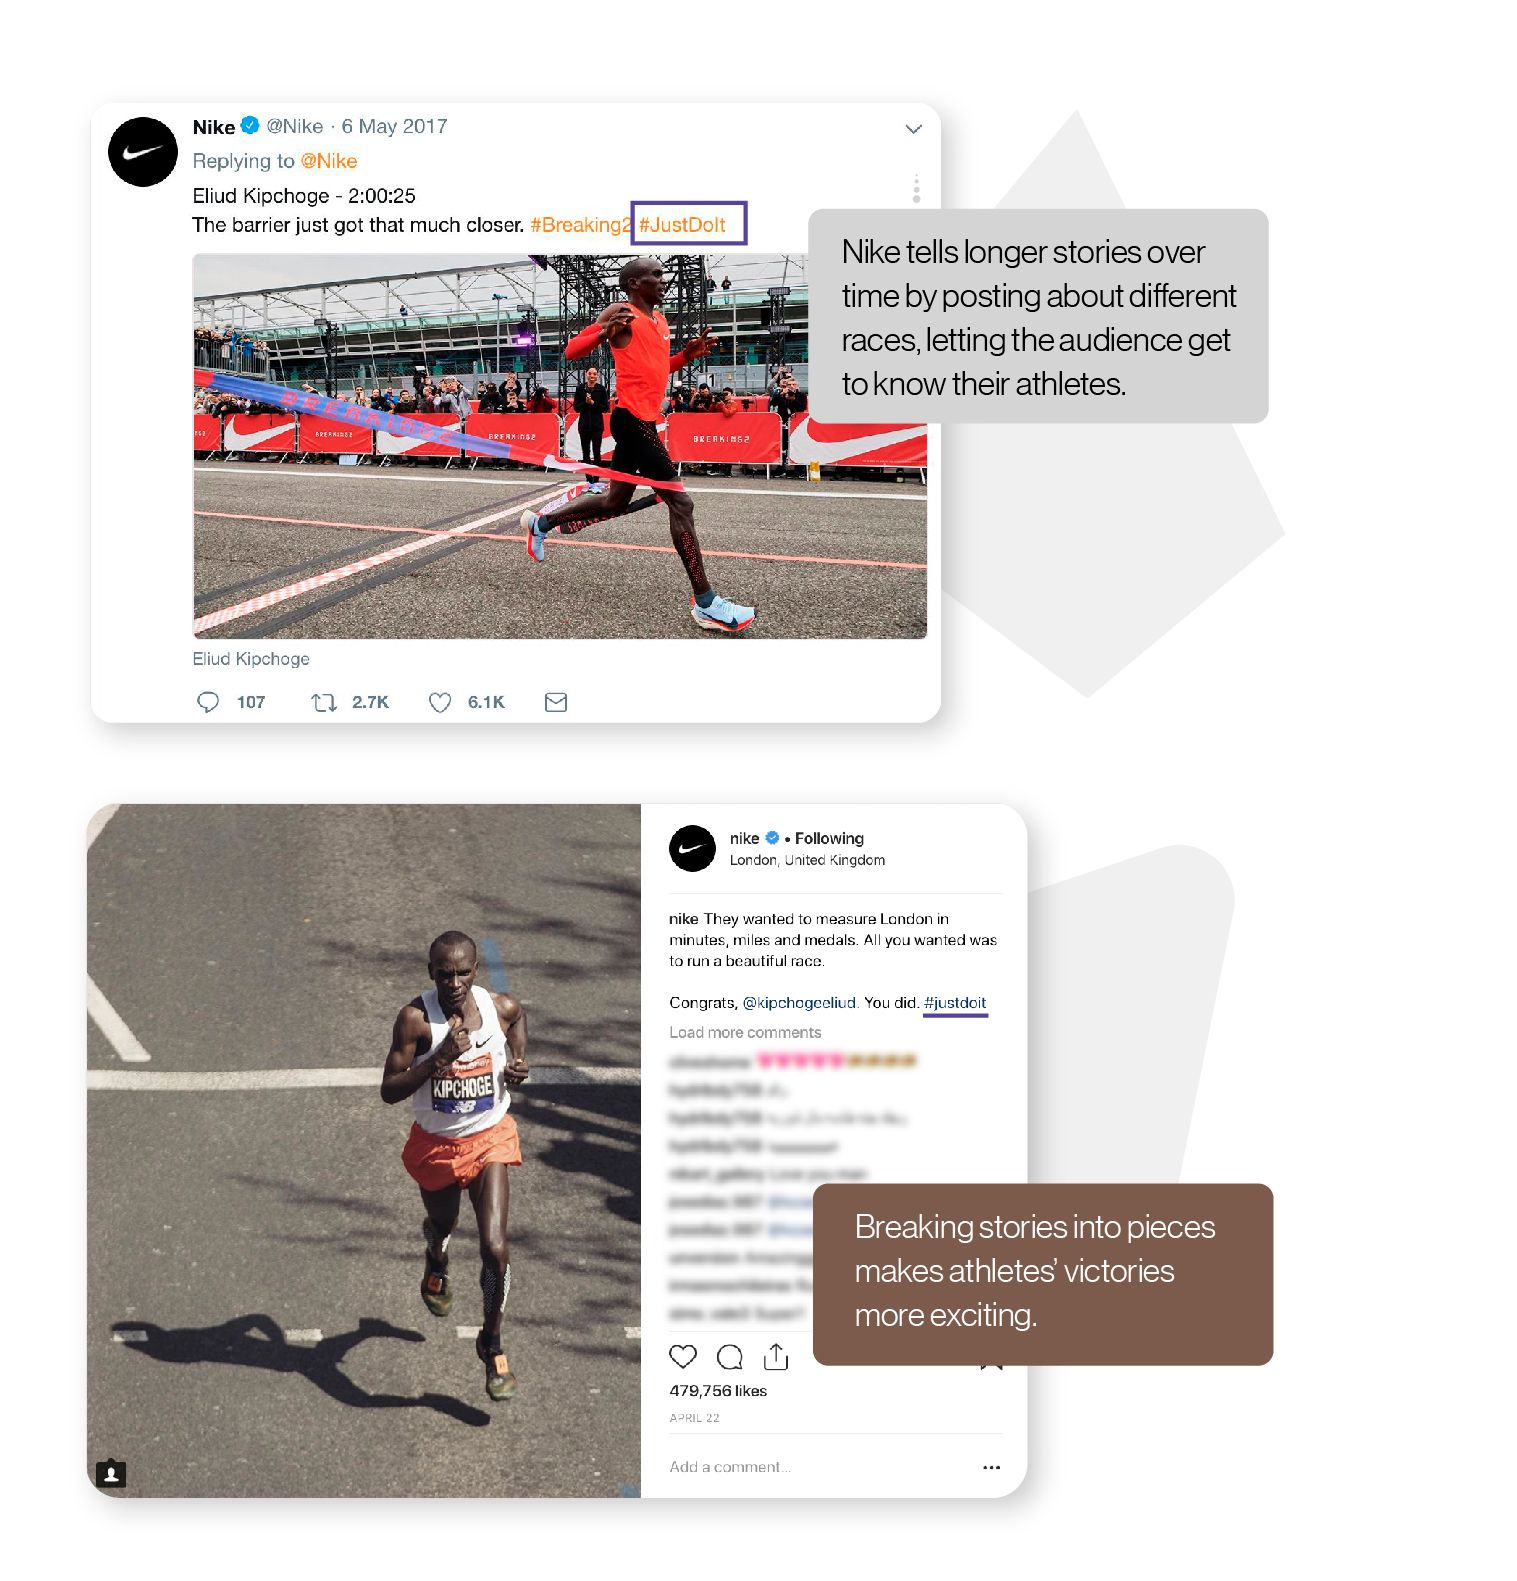 Image: Two tweets by Nike highlighting a specific marathoner over several races, an example of how Nike tells longer stories over time that make their athletes' victories more exciting.